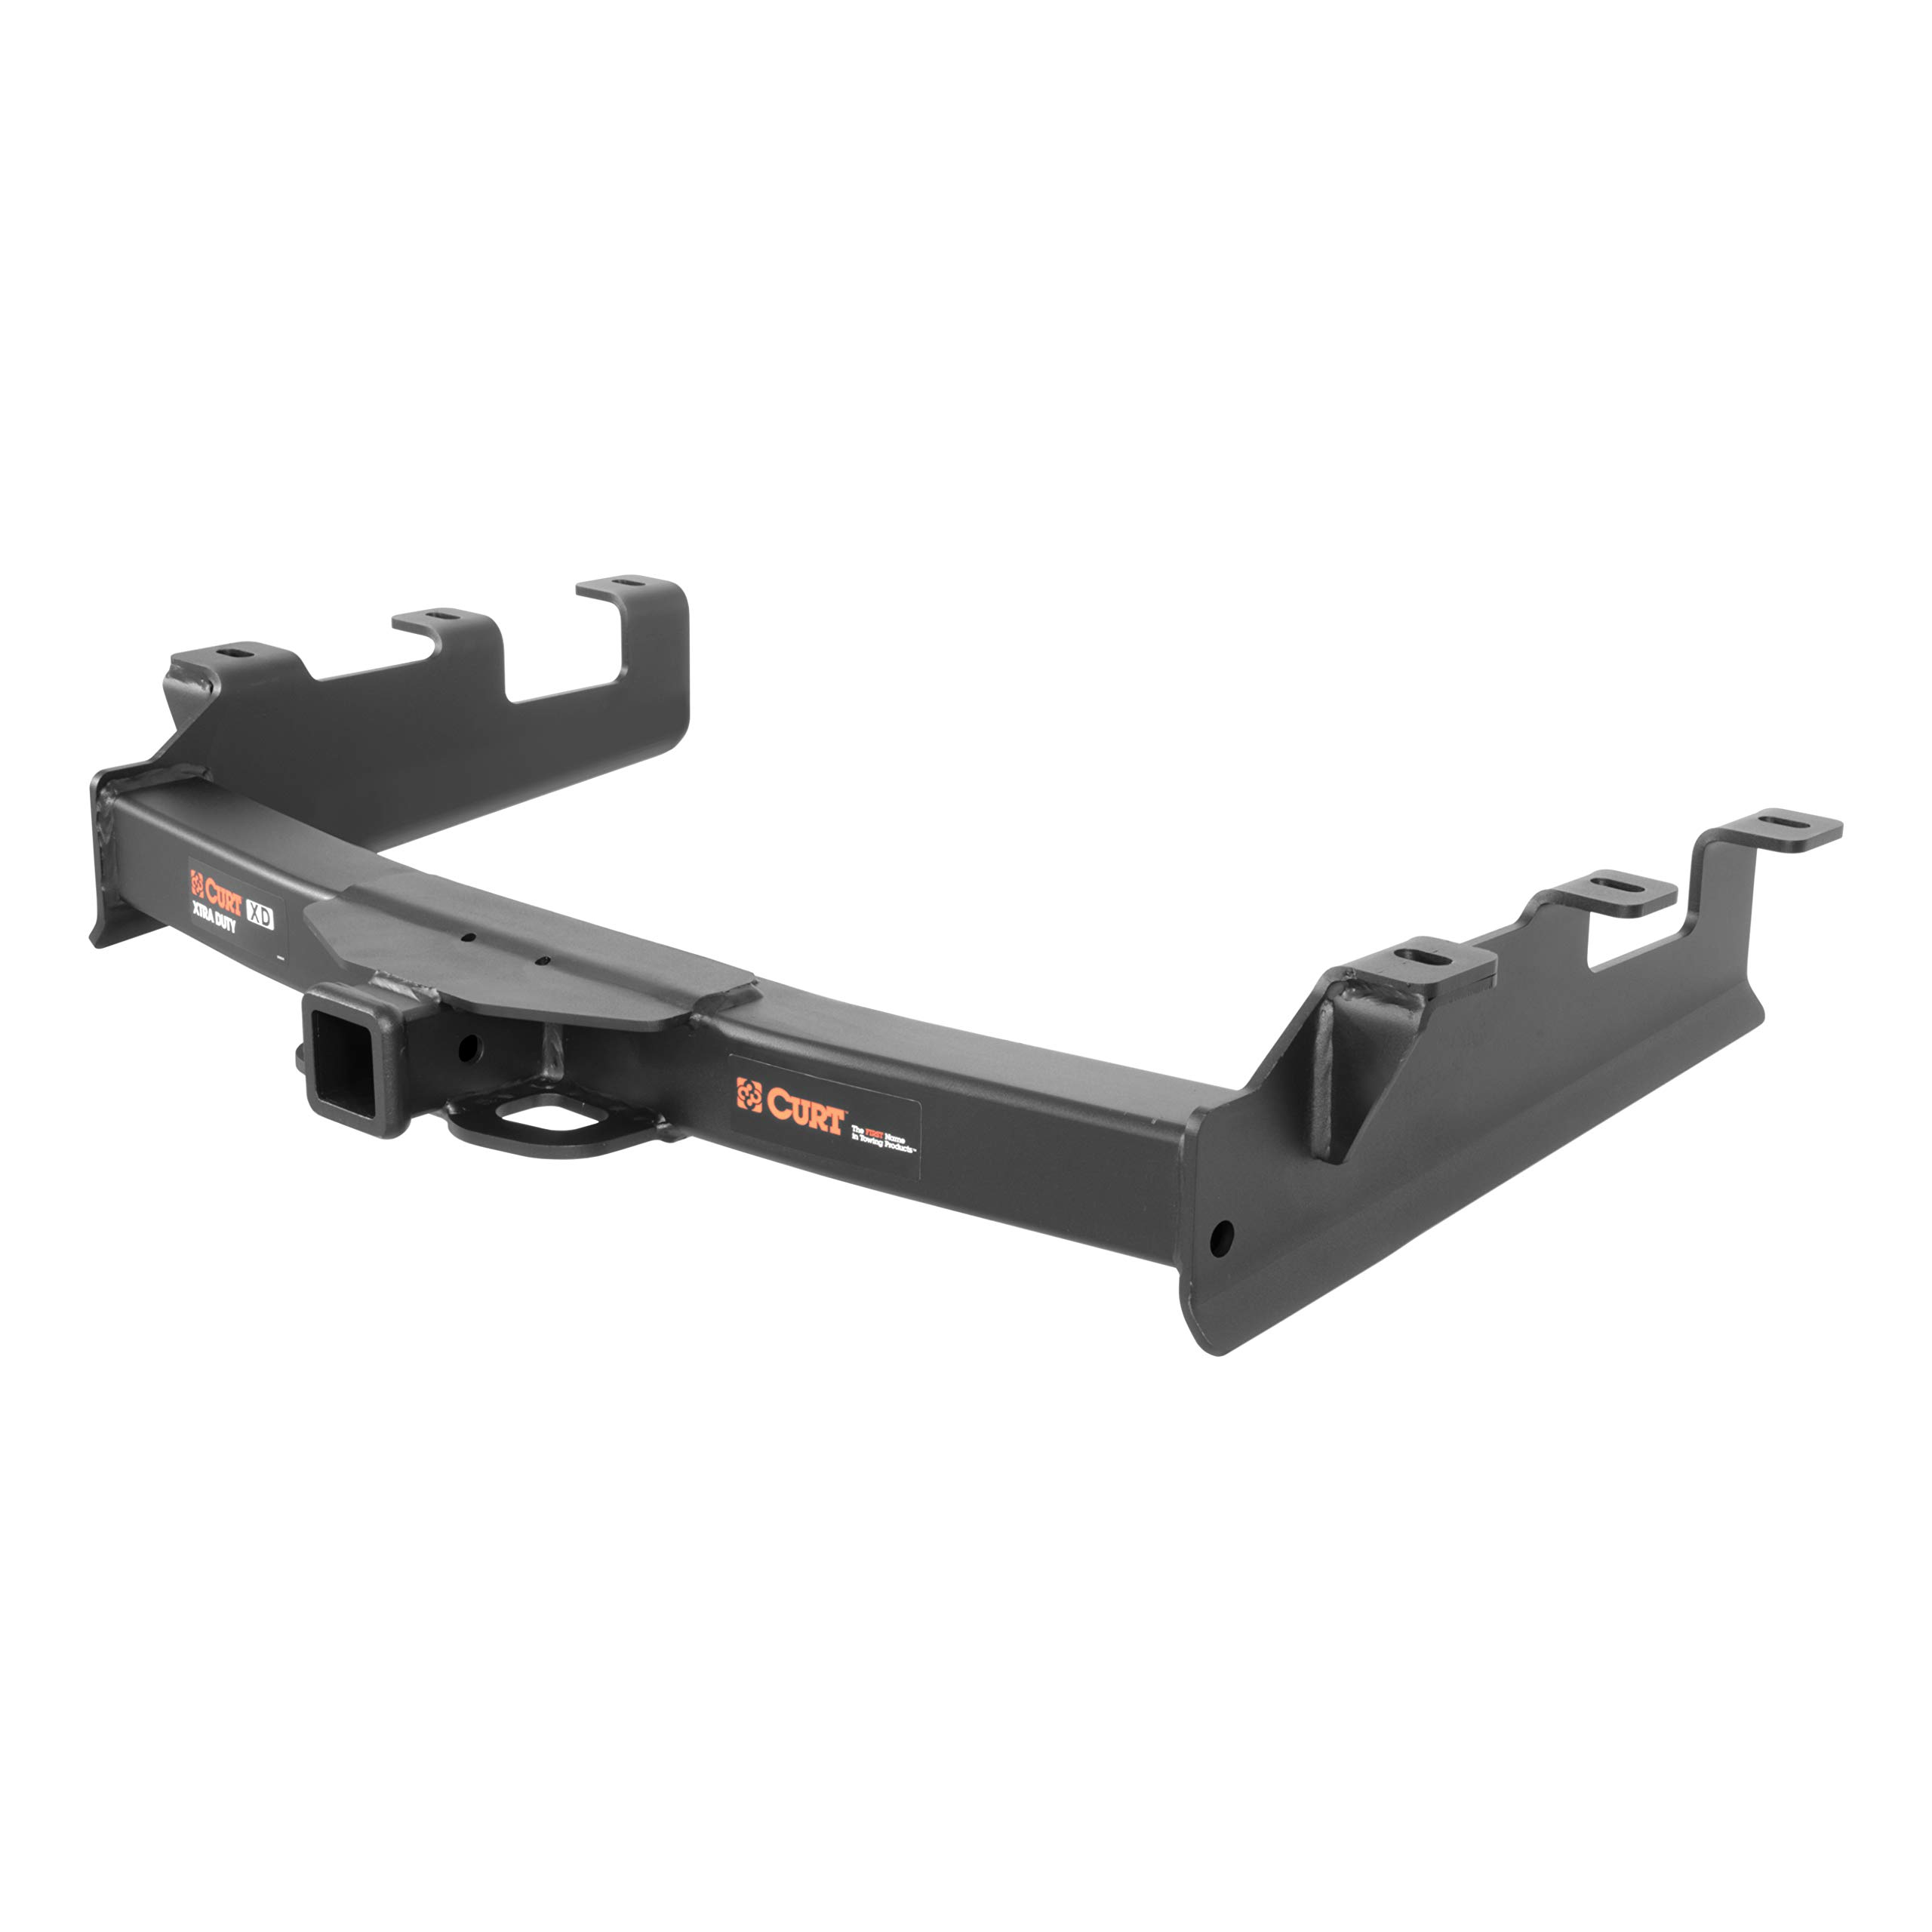 CURT 15302 Xtra Duty Trailer Hitch with 2-Inch Receiver, for Select Chevrolet Silverado, GMC Sierra 2500 by CURT